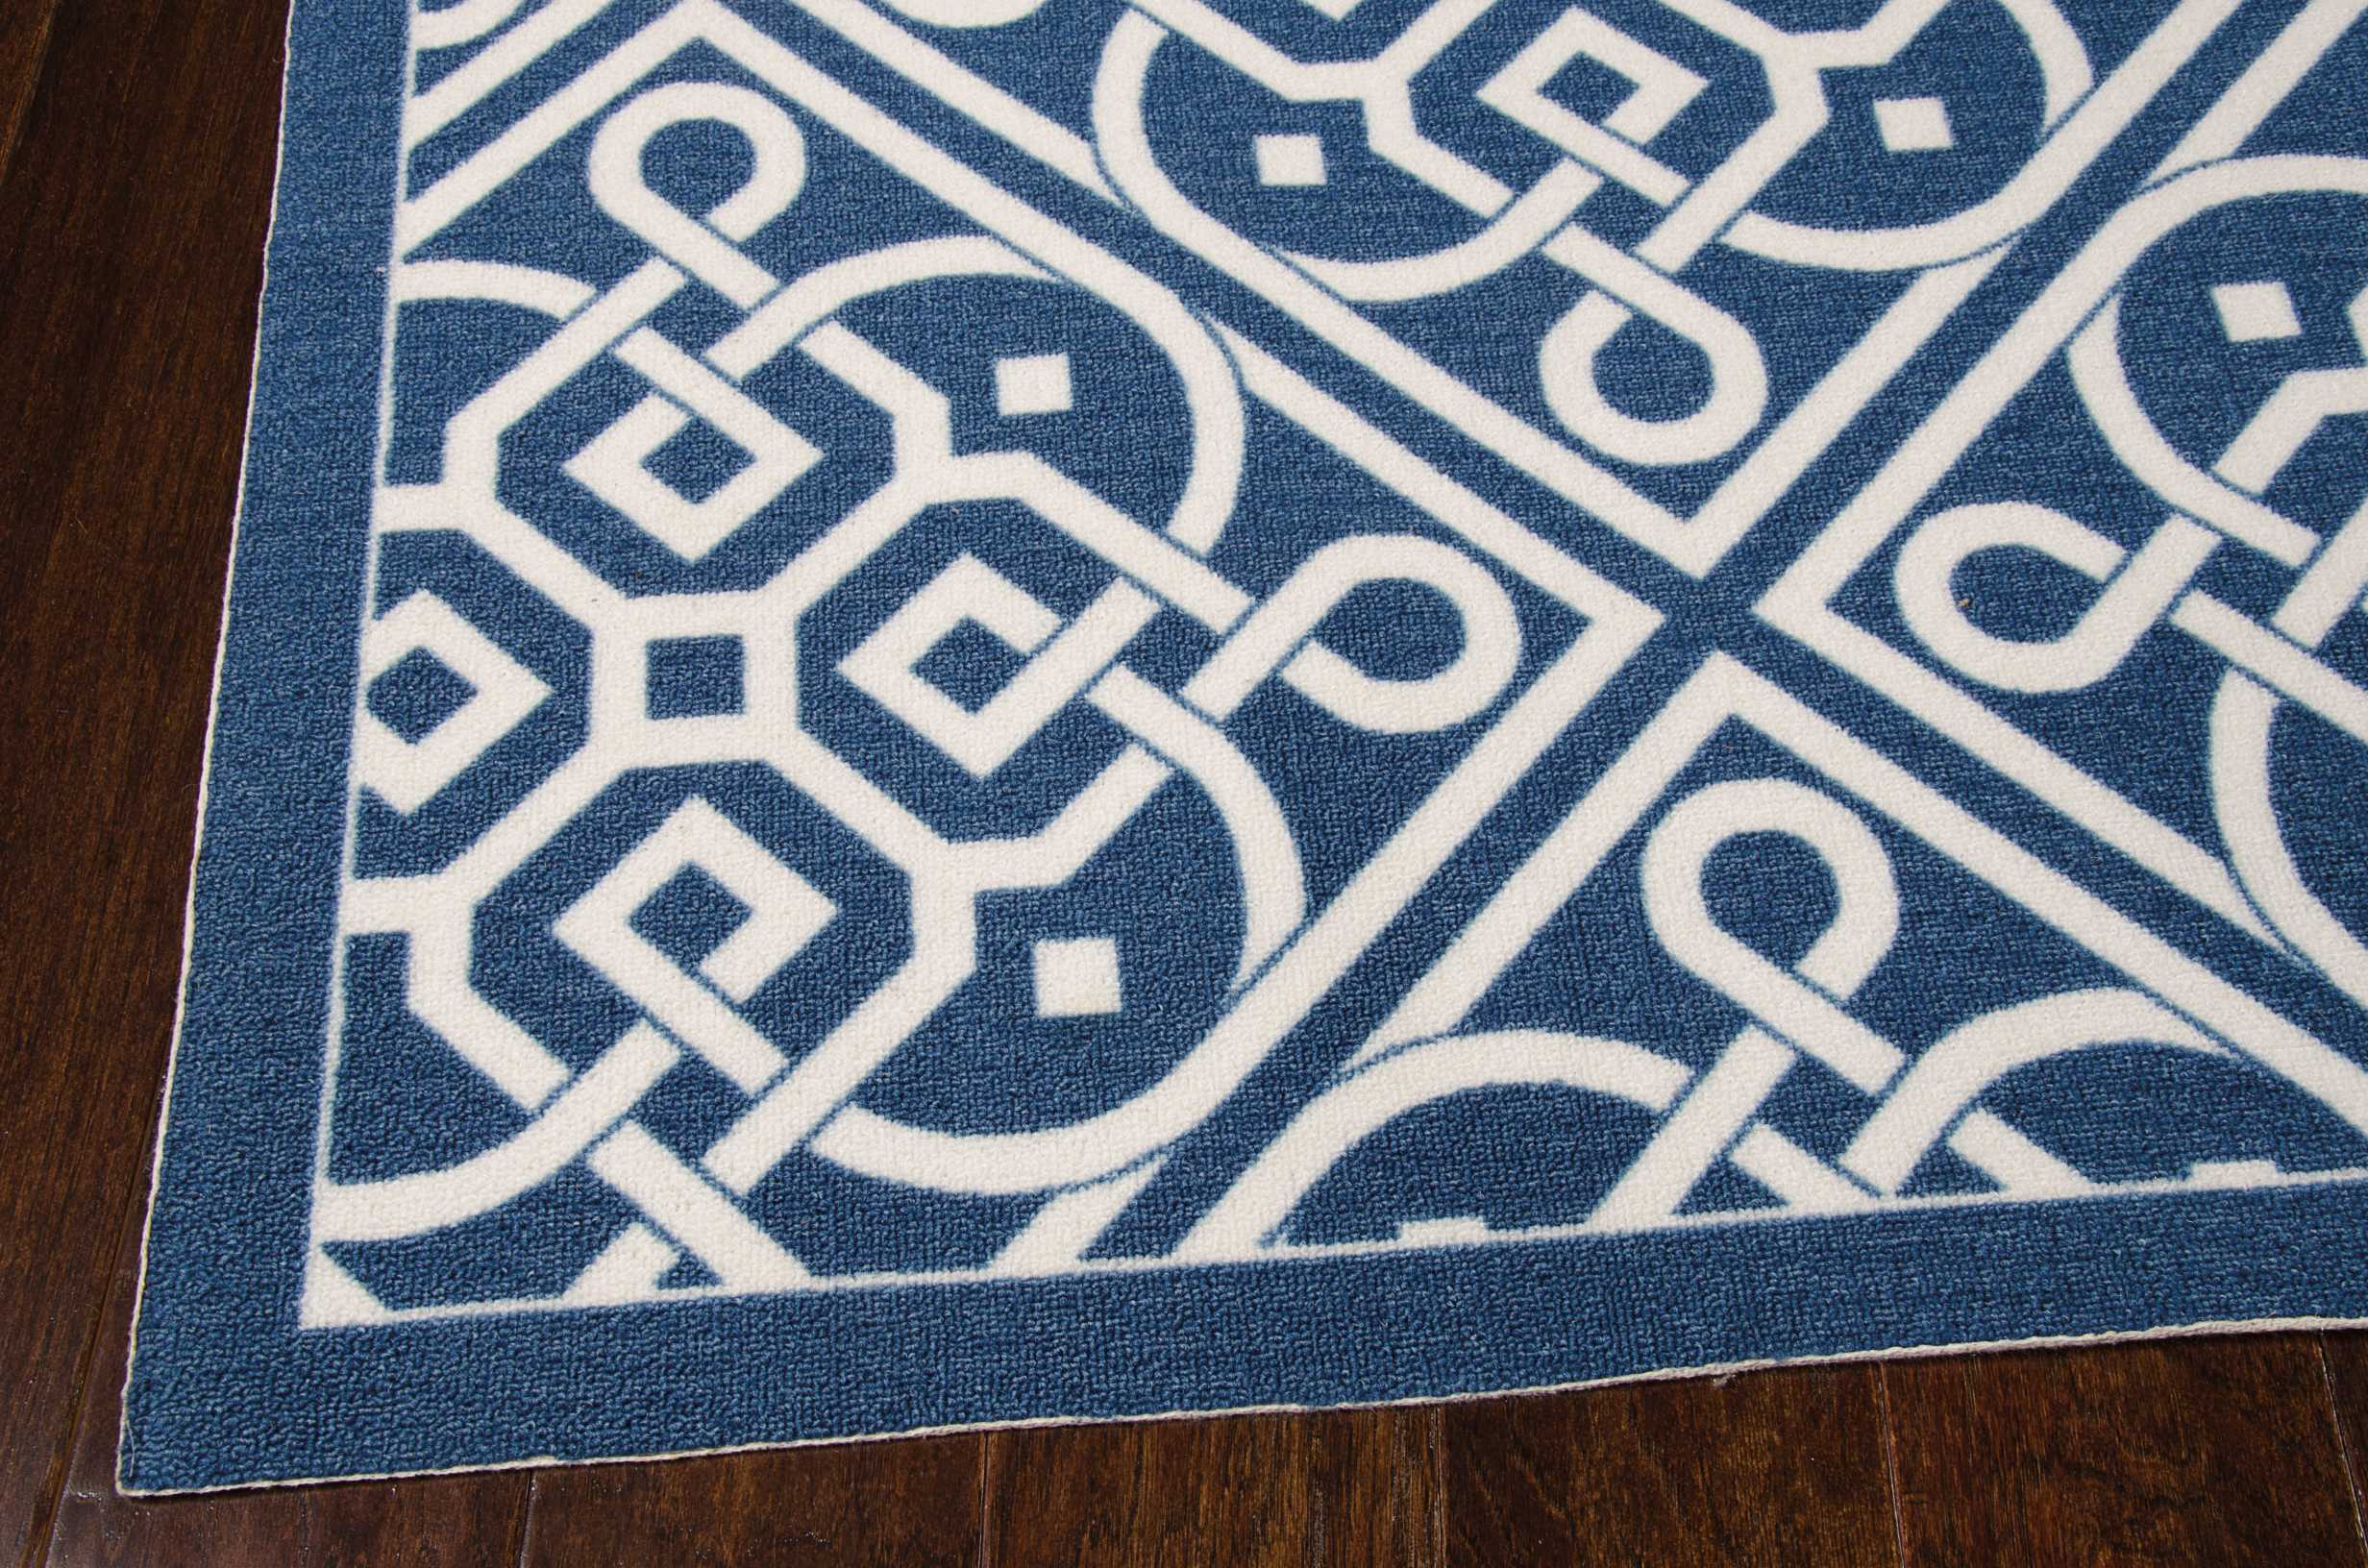 Waverly Sun & Shade Lace It Up Navy Indoor/Outdoor Area Rug by Nourison